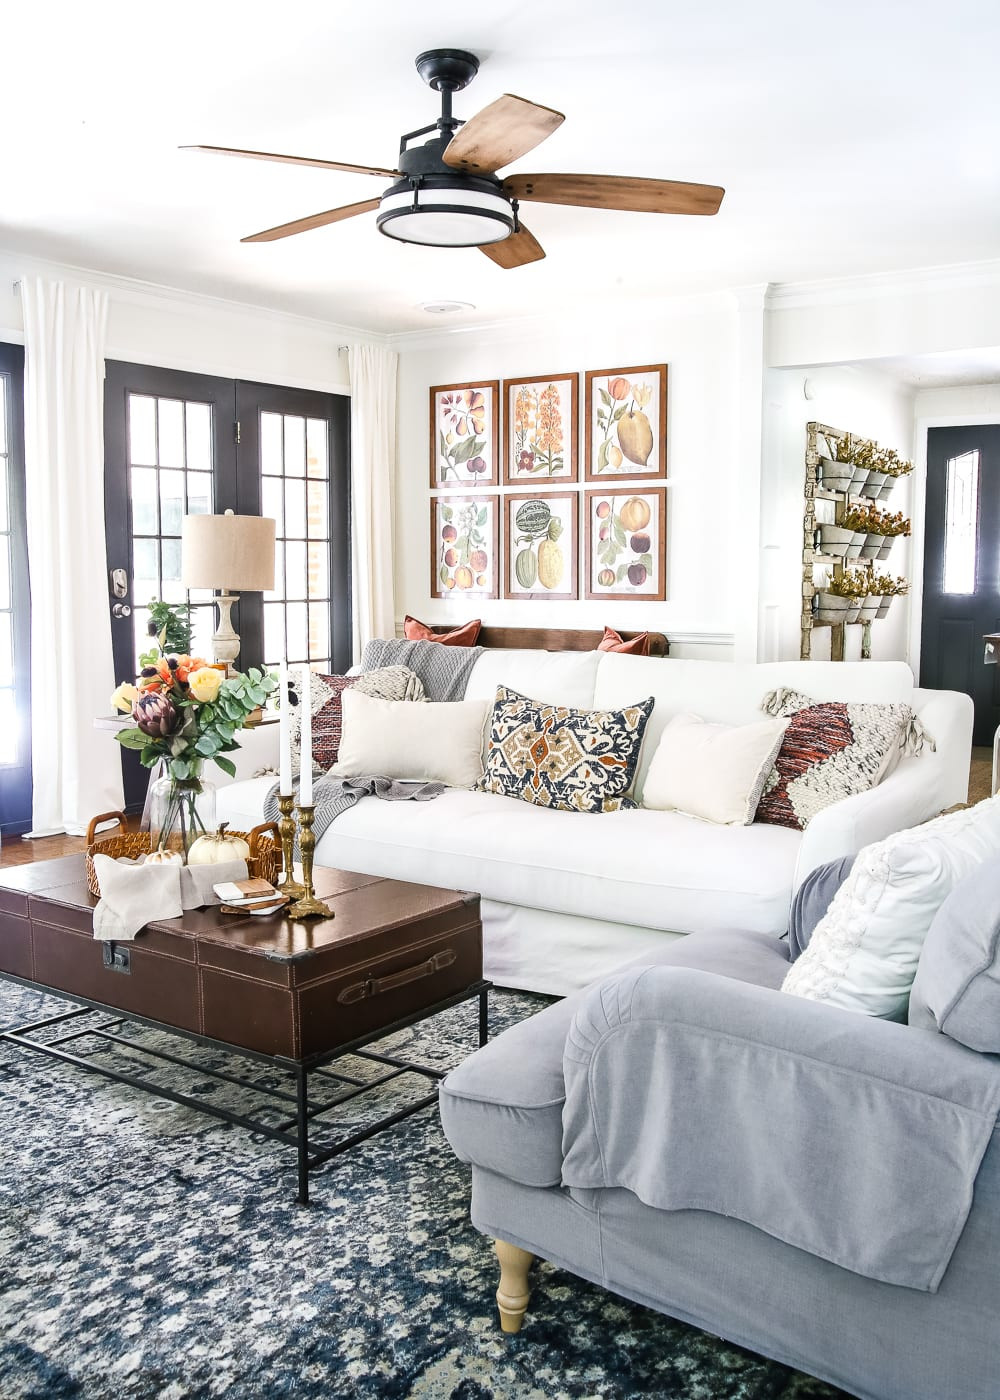 Fall Living Room Decorations  8 Fall Decorating Tips for a Bud and Fall Home Tour